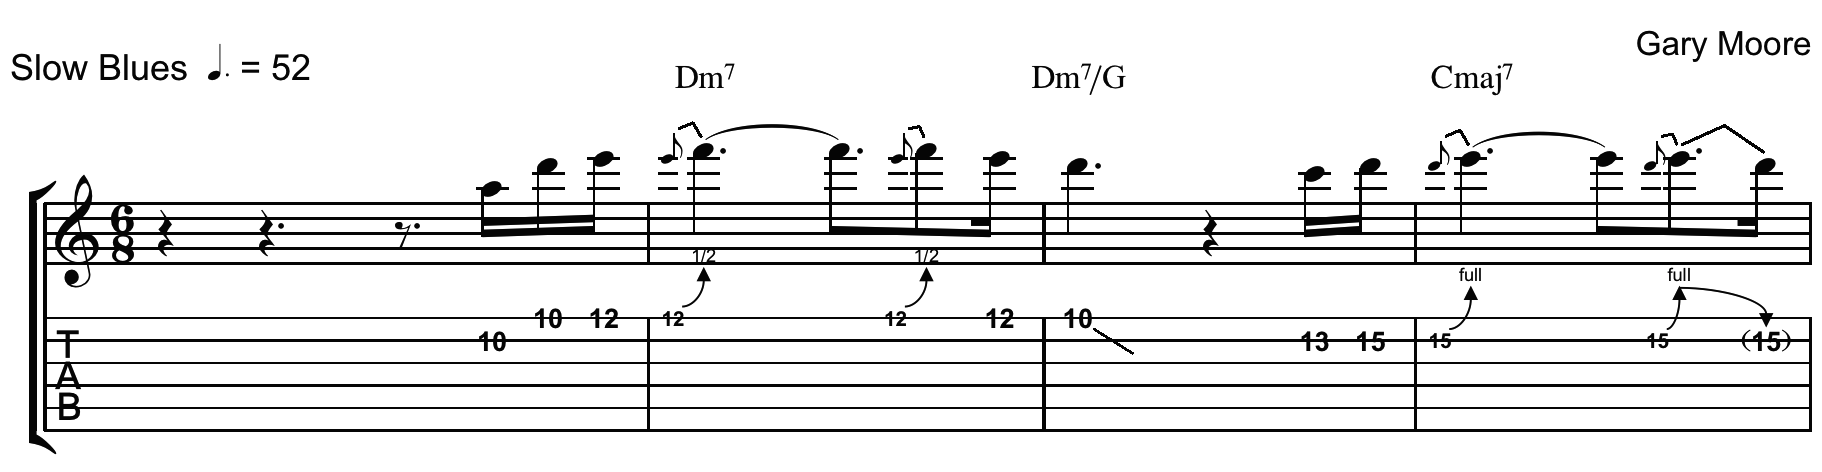 still-got-the-blues-guitar-tab_1.png